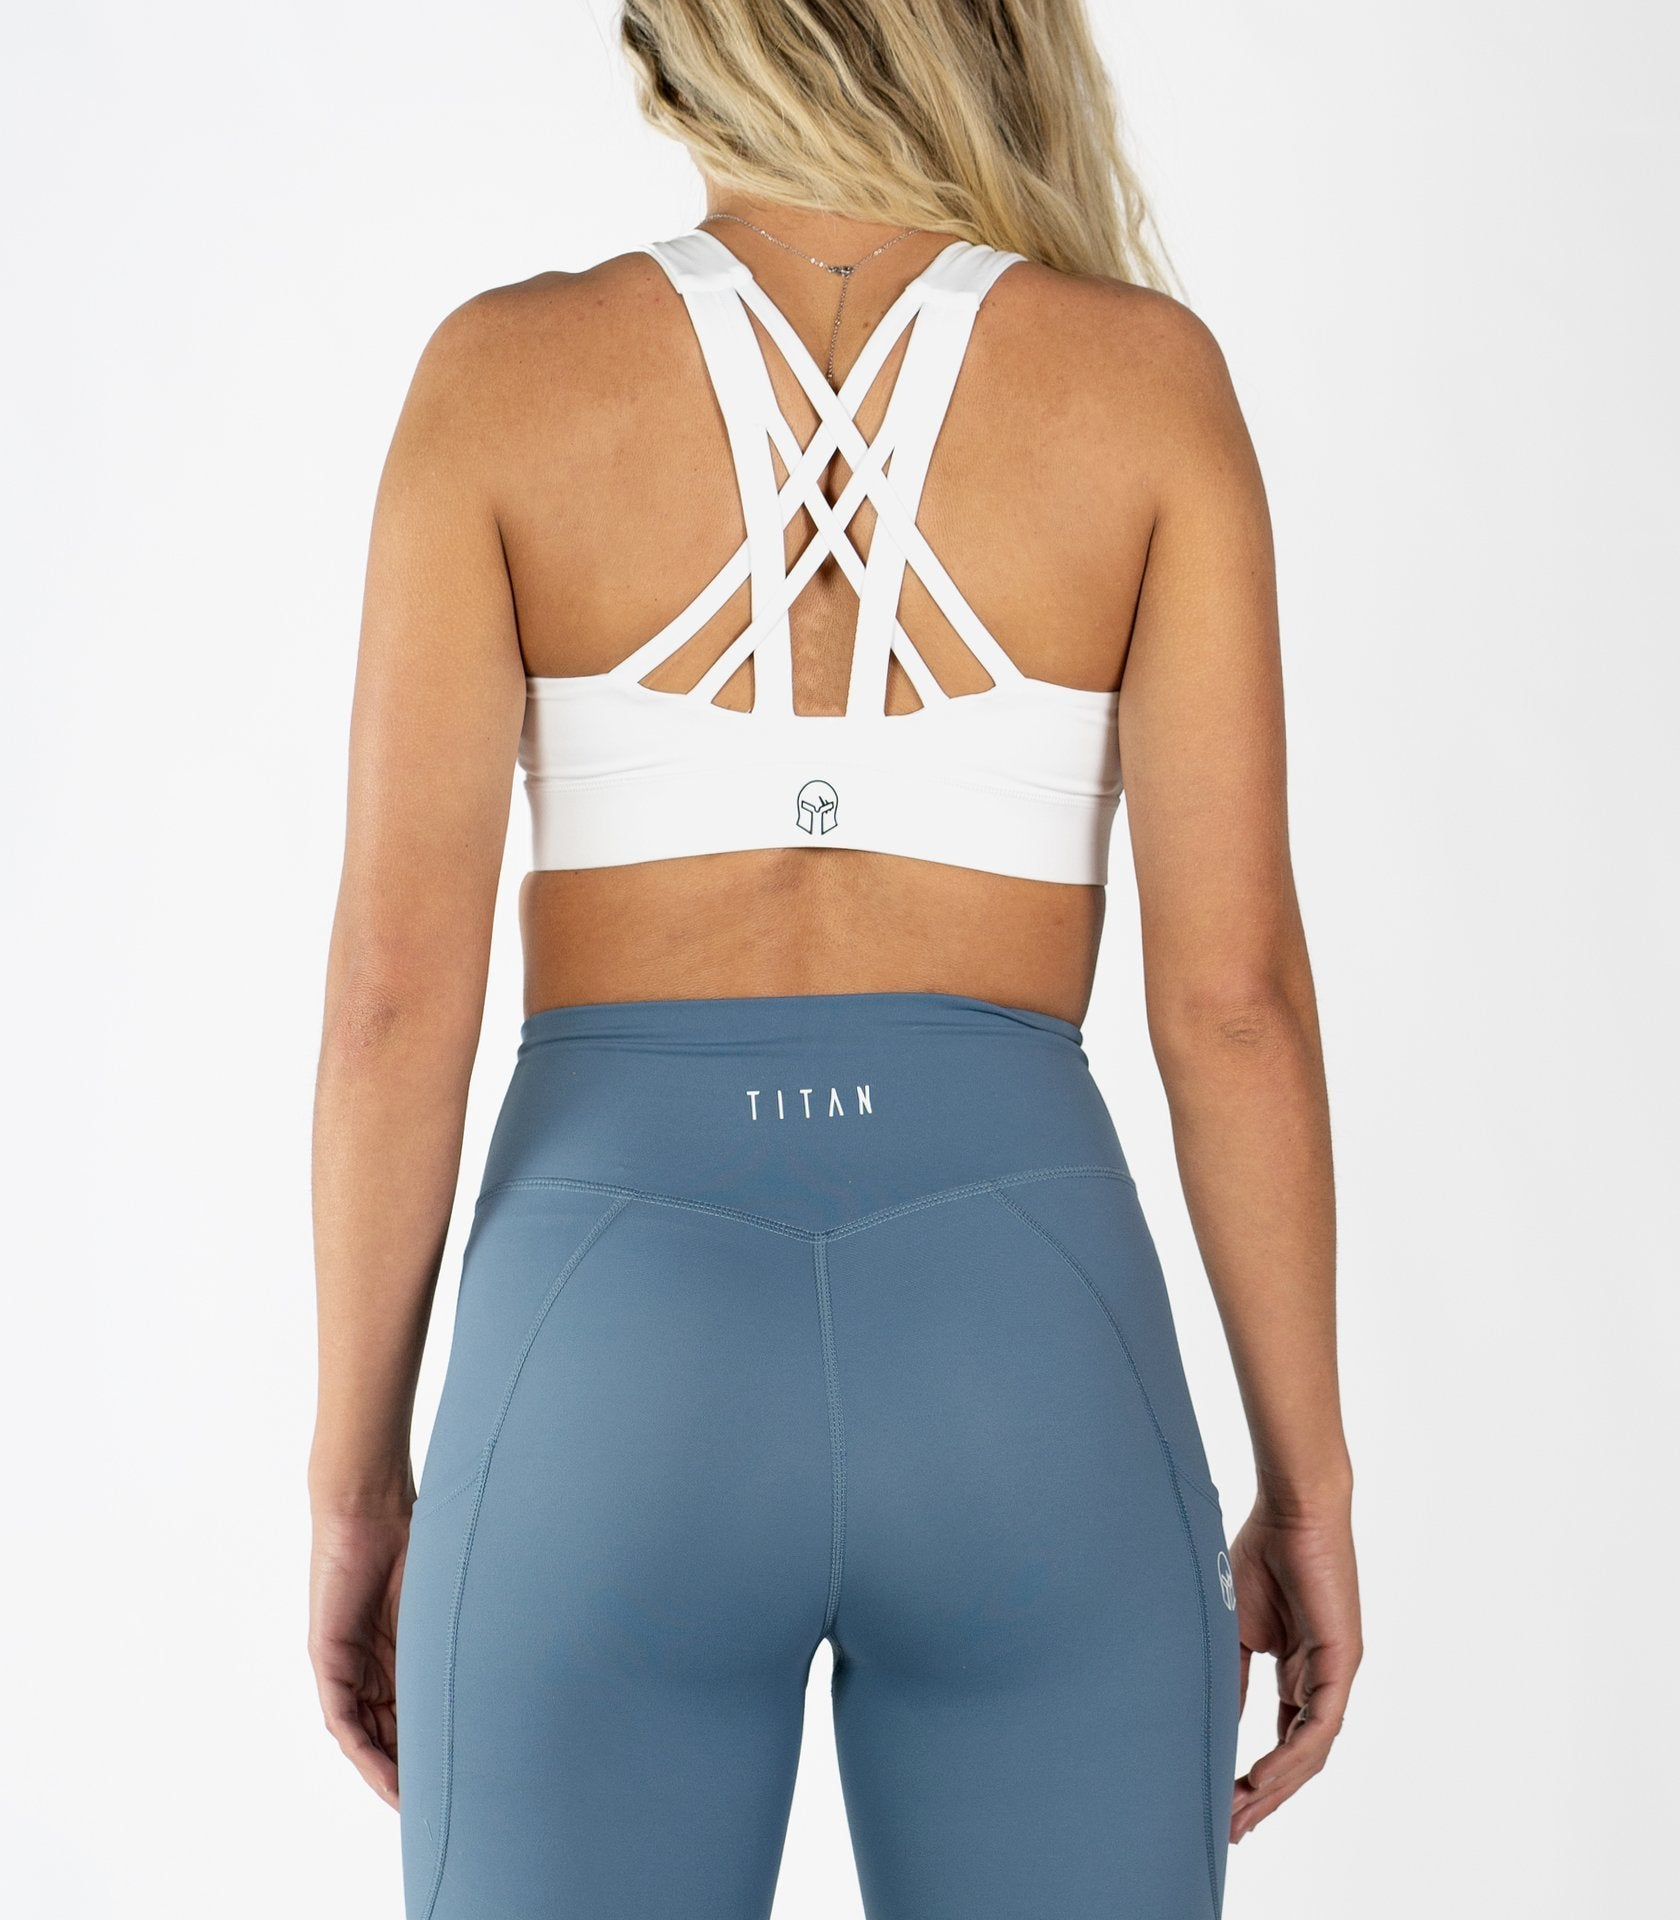 Flex Sports Bra - Titan